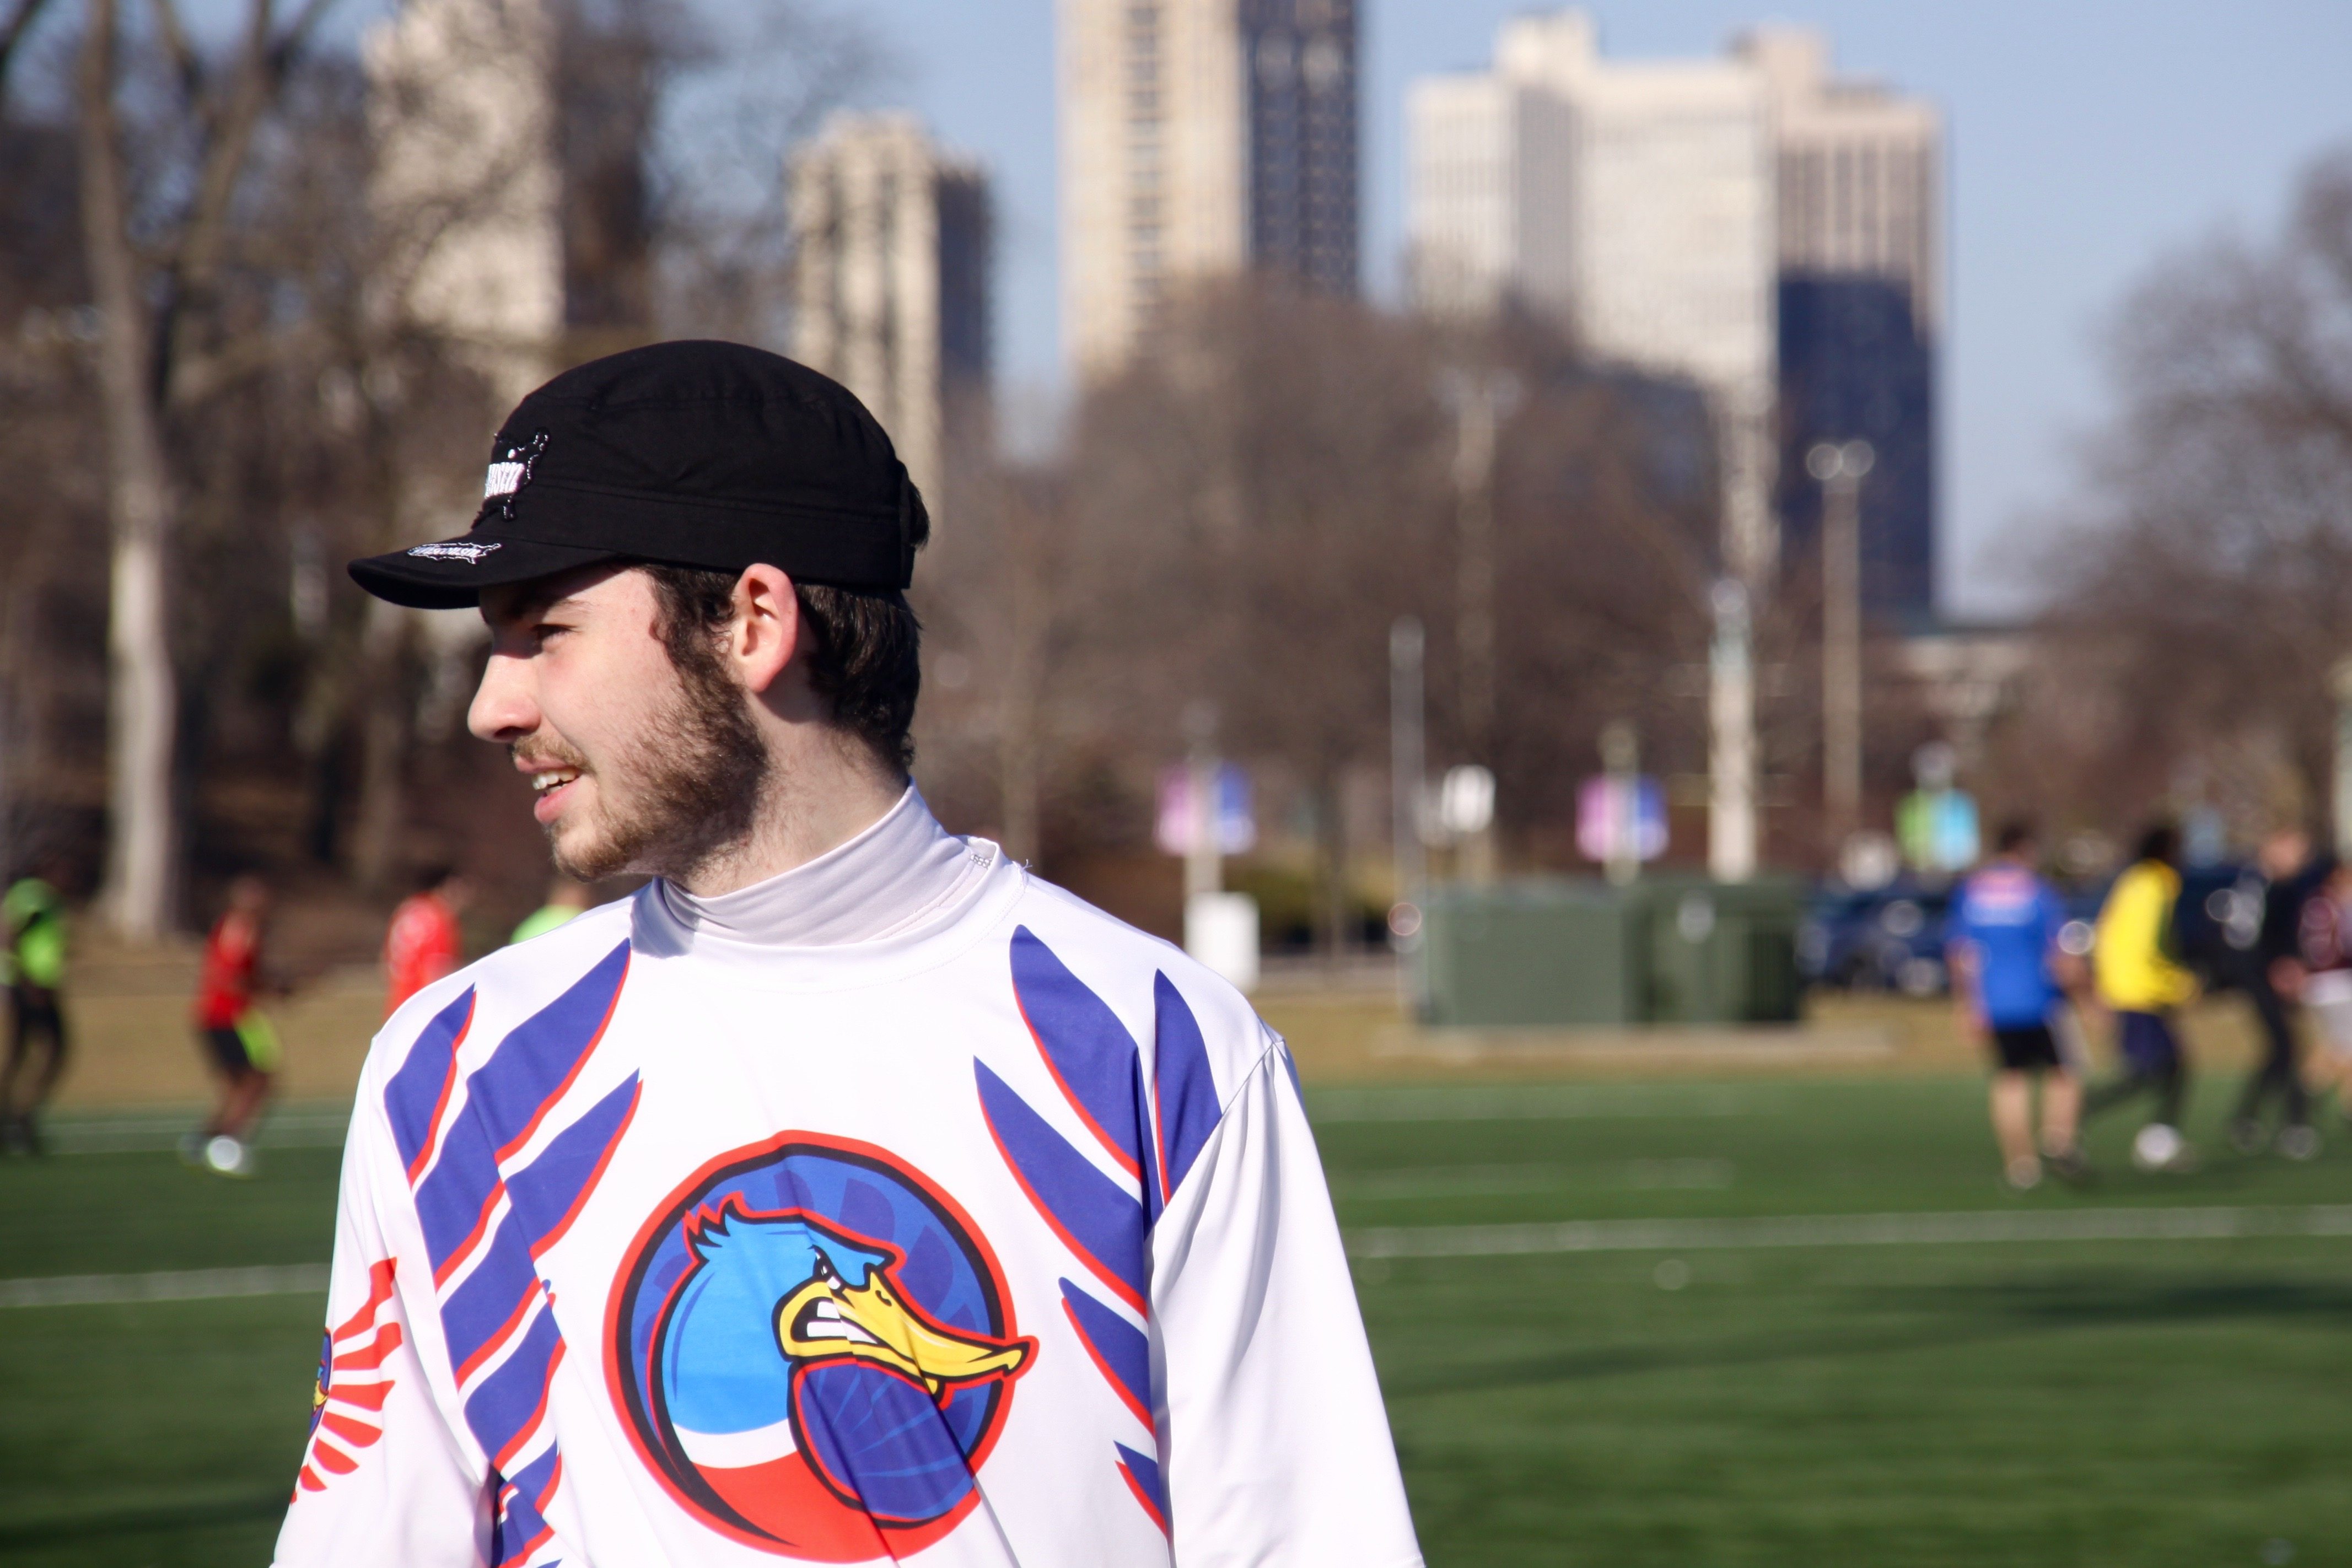 Josh Ludke waits for a drill to start at the DePaul Ultimate Club practice on Jan. 21, 2017. (Photo/Ben Rains)